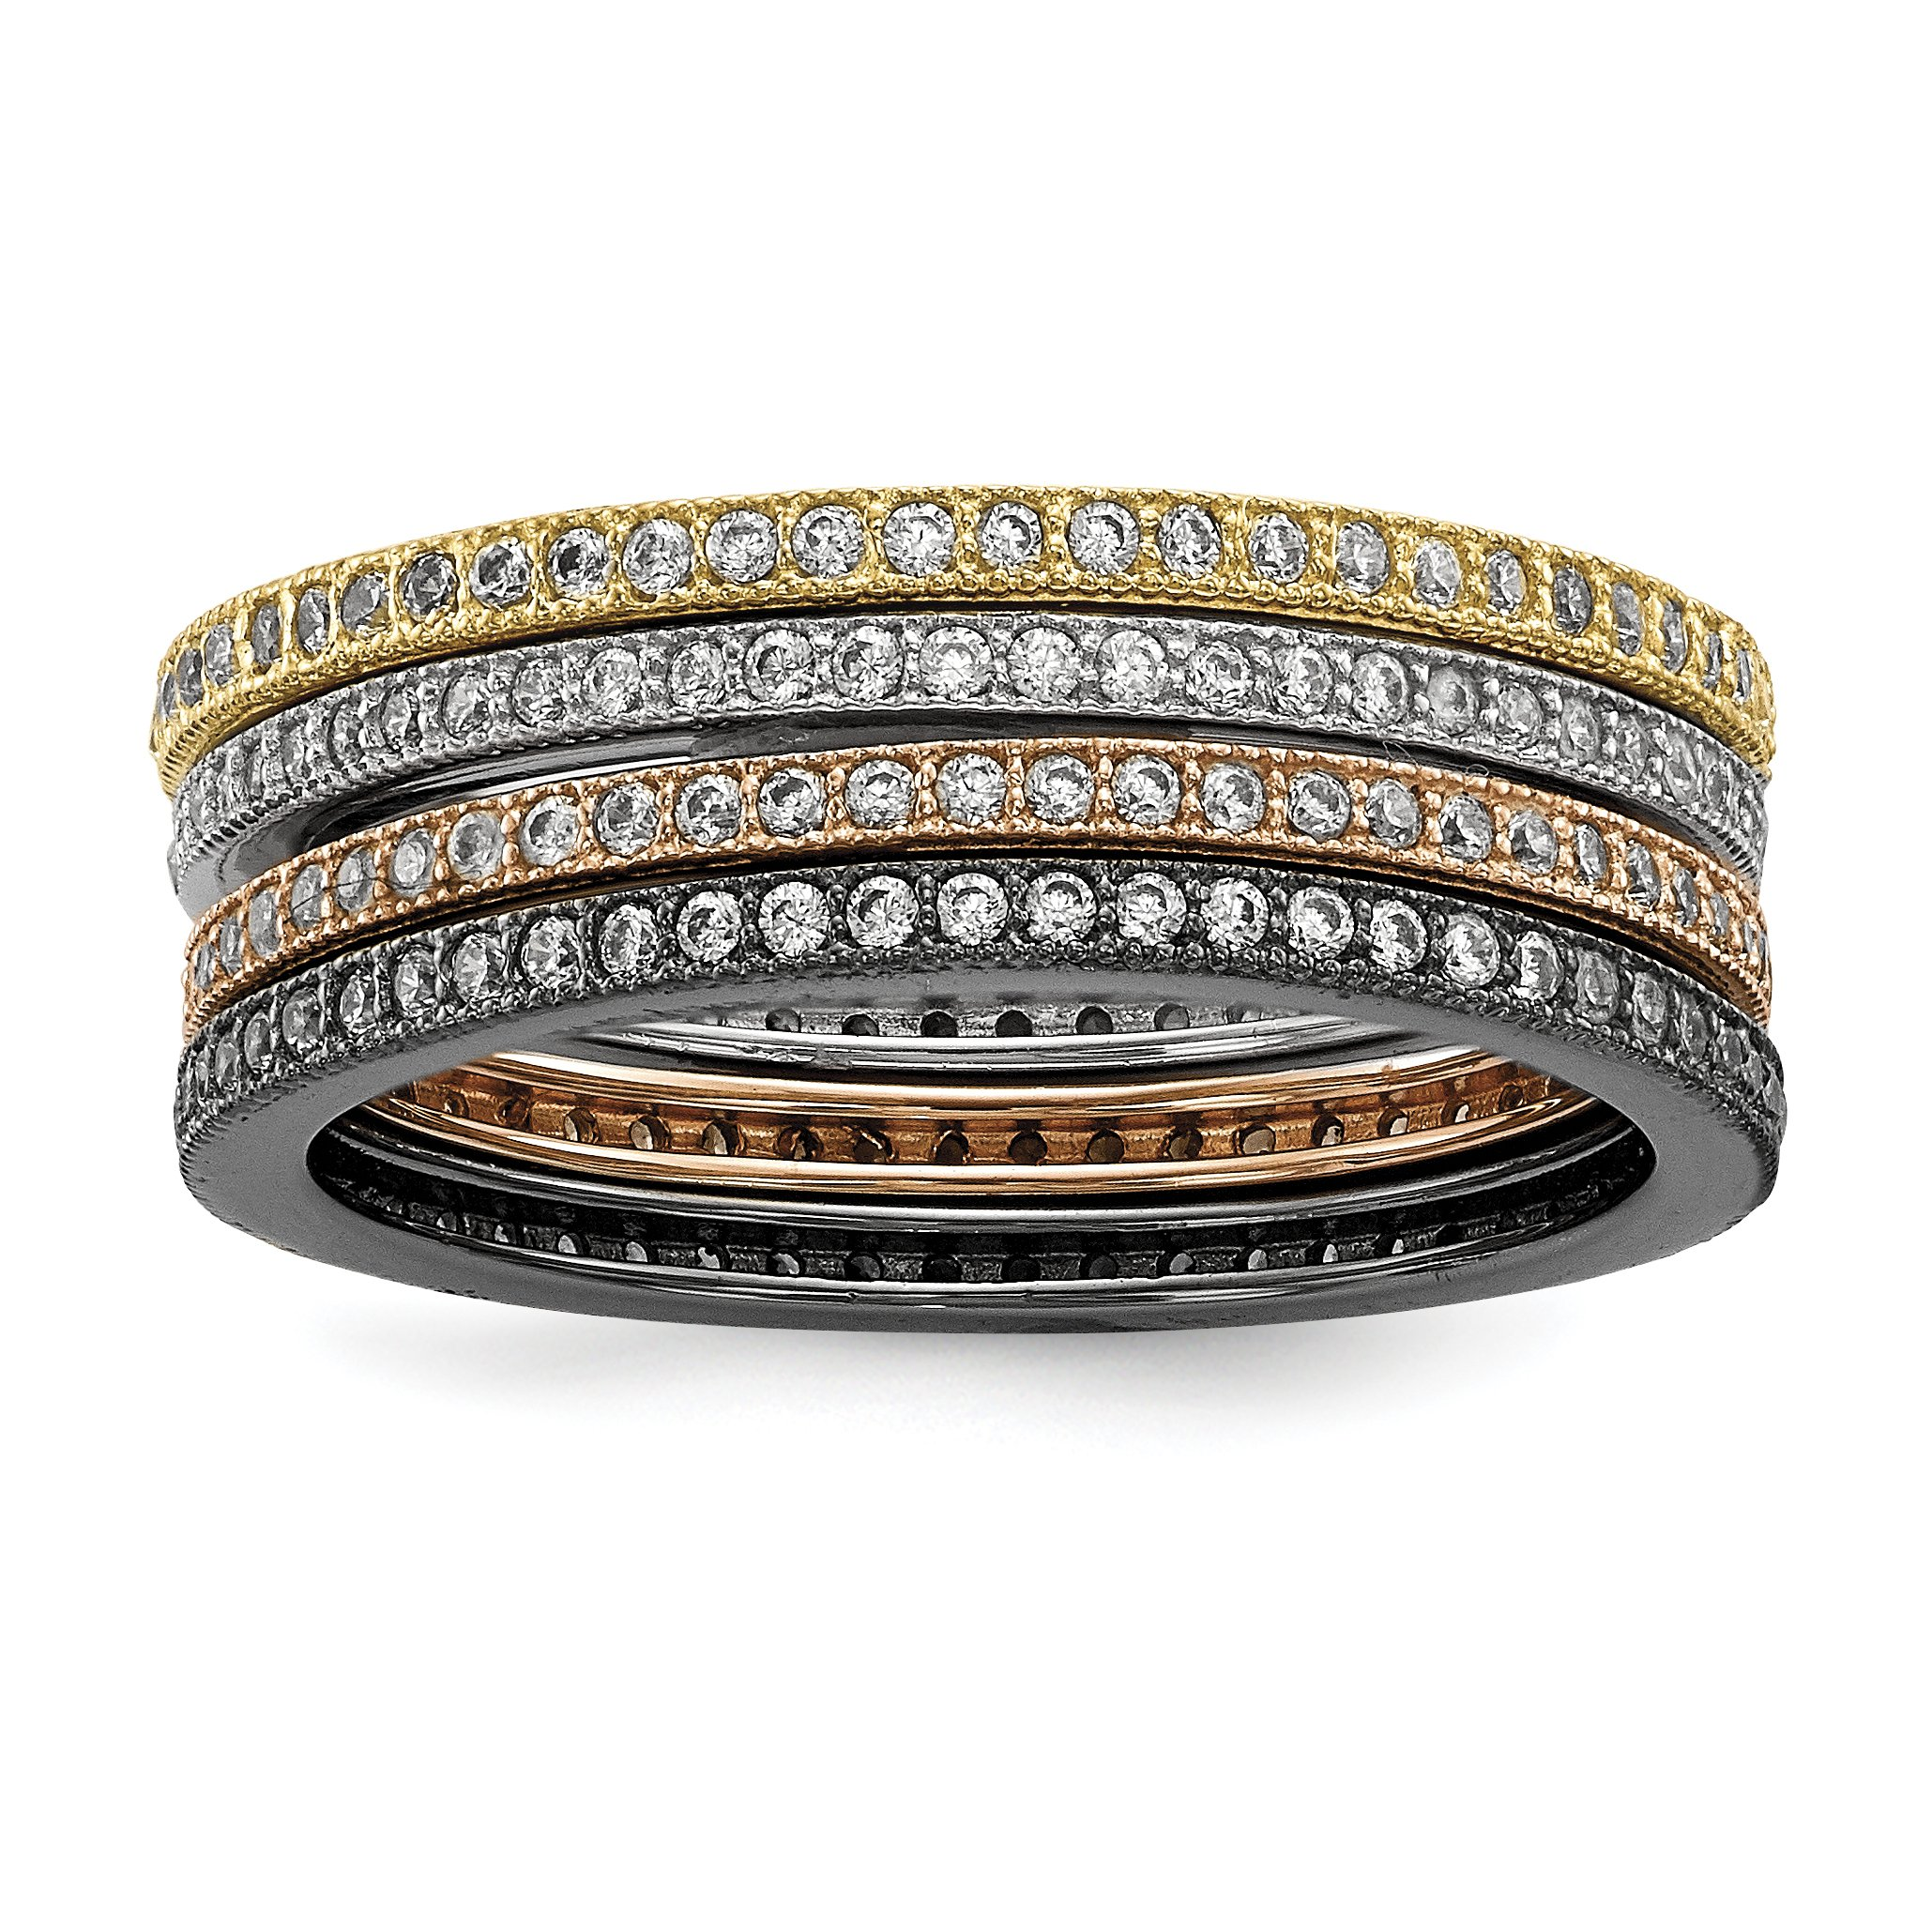 ICE CARATS 925 Sterling Silver Cubic Zirconia Cz 4 Piece Band Ring Size 8.00 Set Fine Jewelry Gift Set For Women Heart